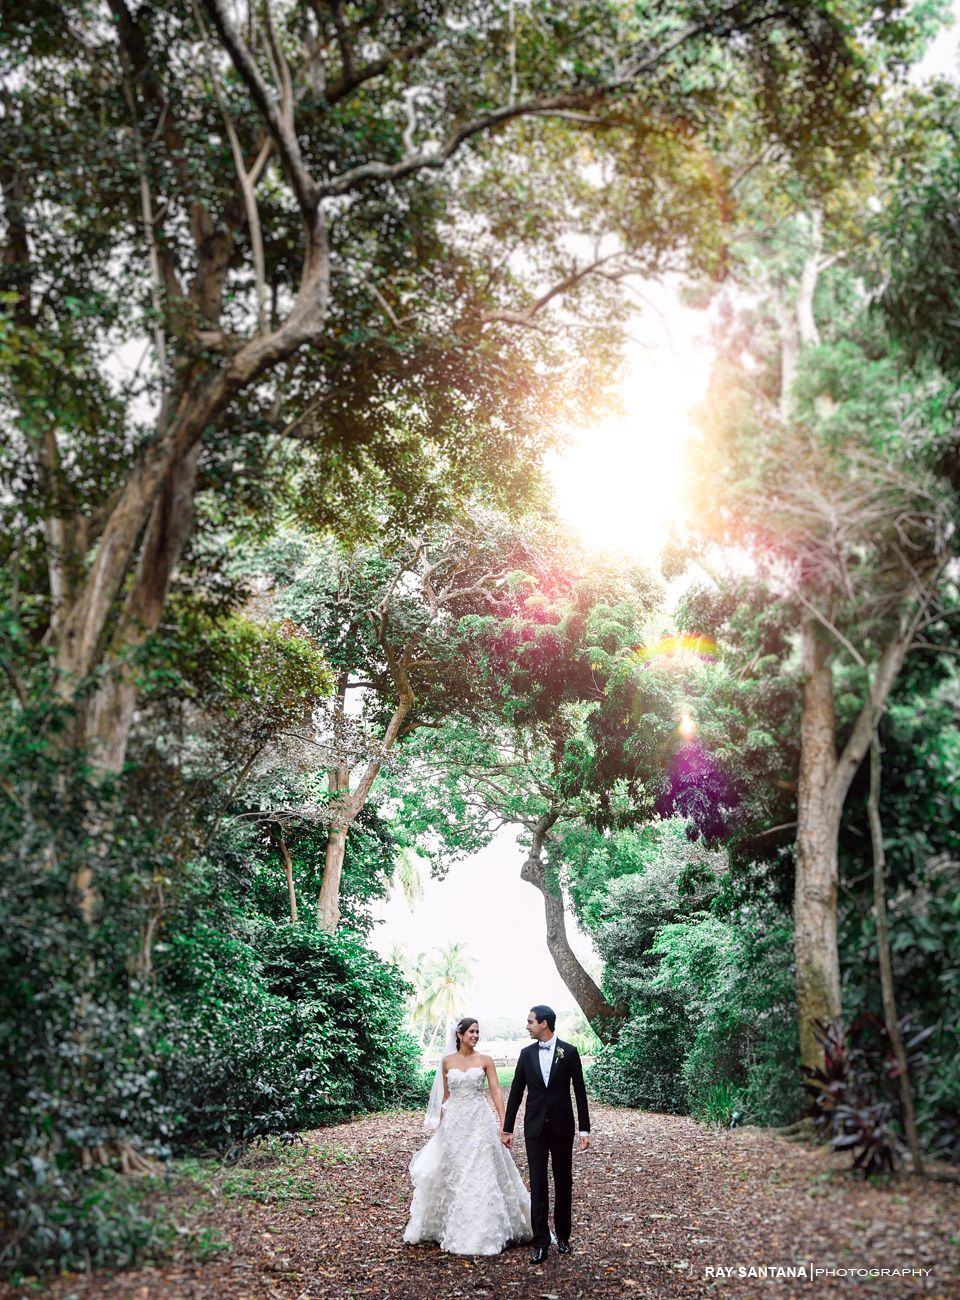 Attrayant Miami Wedding At Fairchild Tropical Botanic Garden. Fairchild Tropical  Weddings Have Fine Art Photography Written All Over.